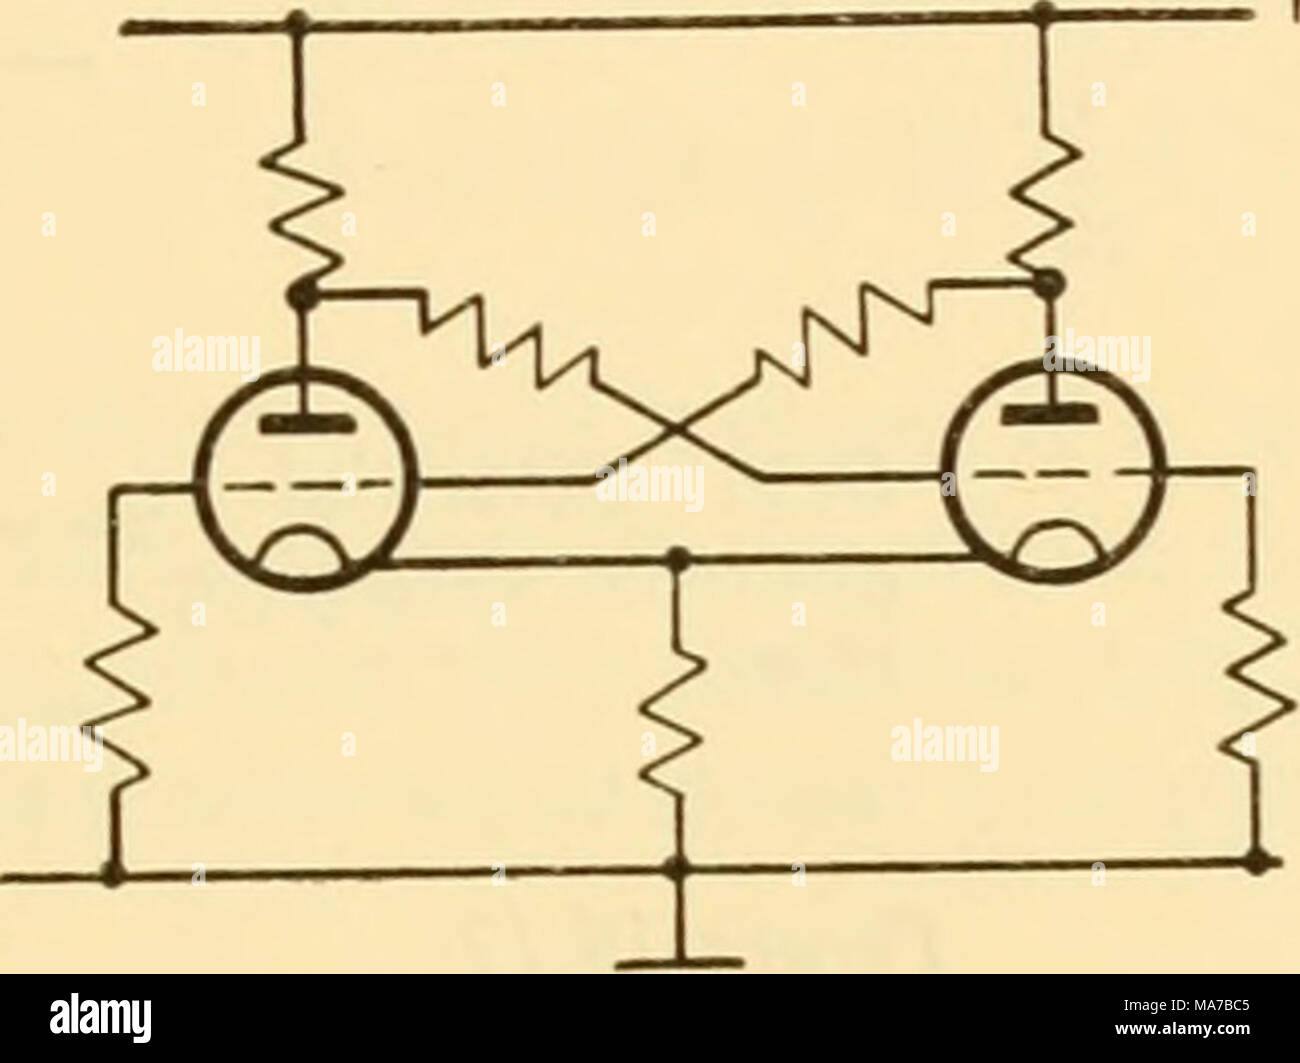 Cathode Ray Tube Stock Photos Images Page Diagram Electronic Apparatus For Biological Research Ht Figure 1610 Triangular Wave Generators The Most Important